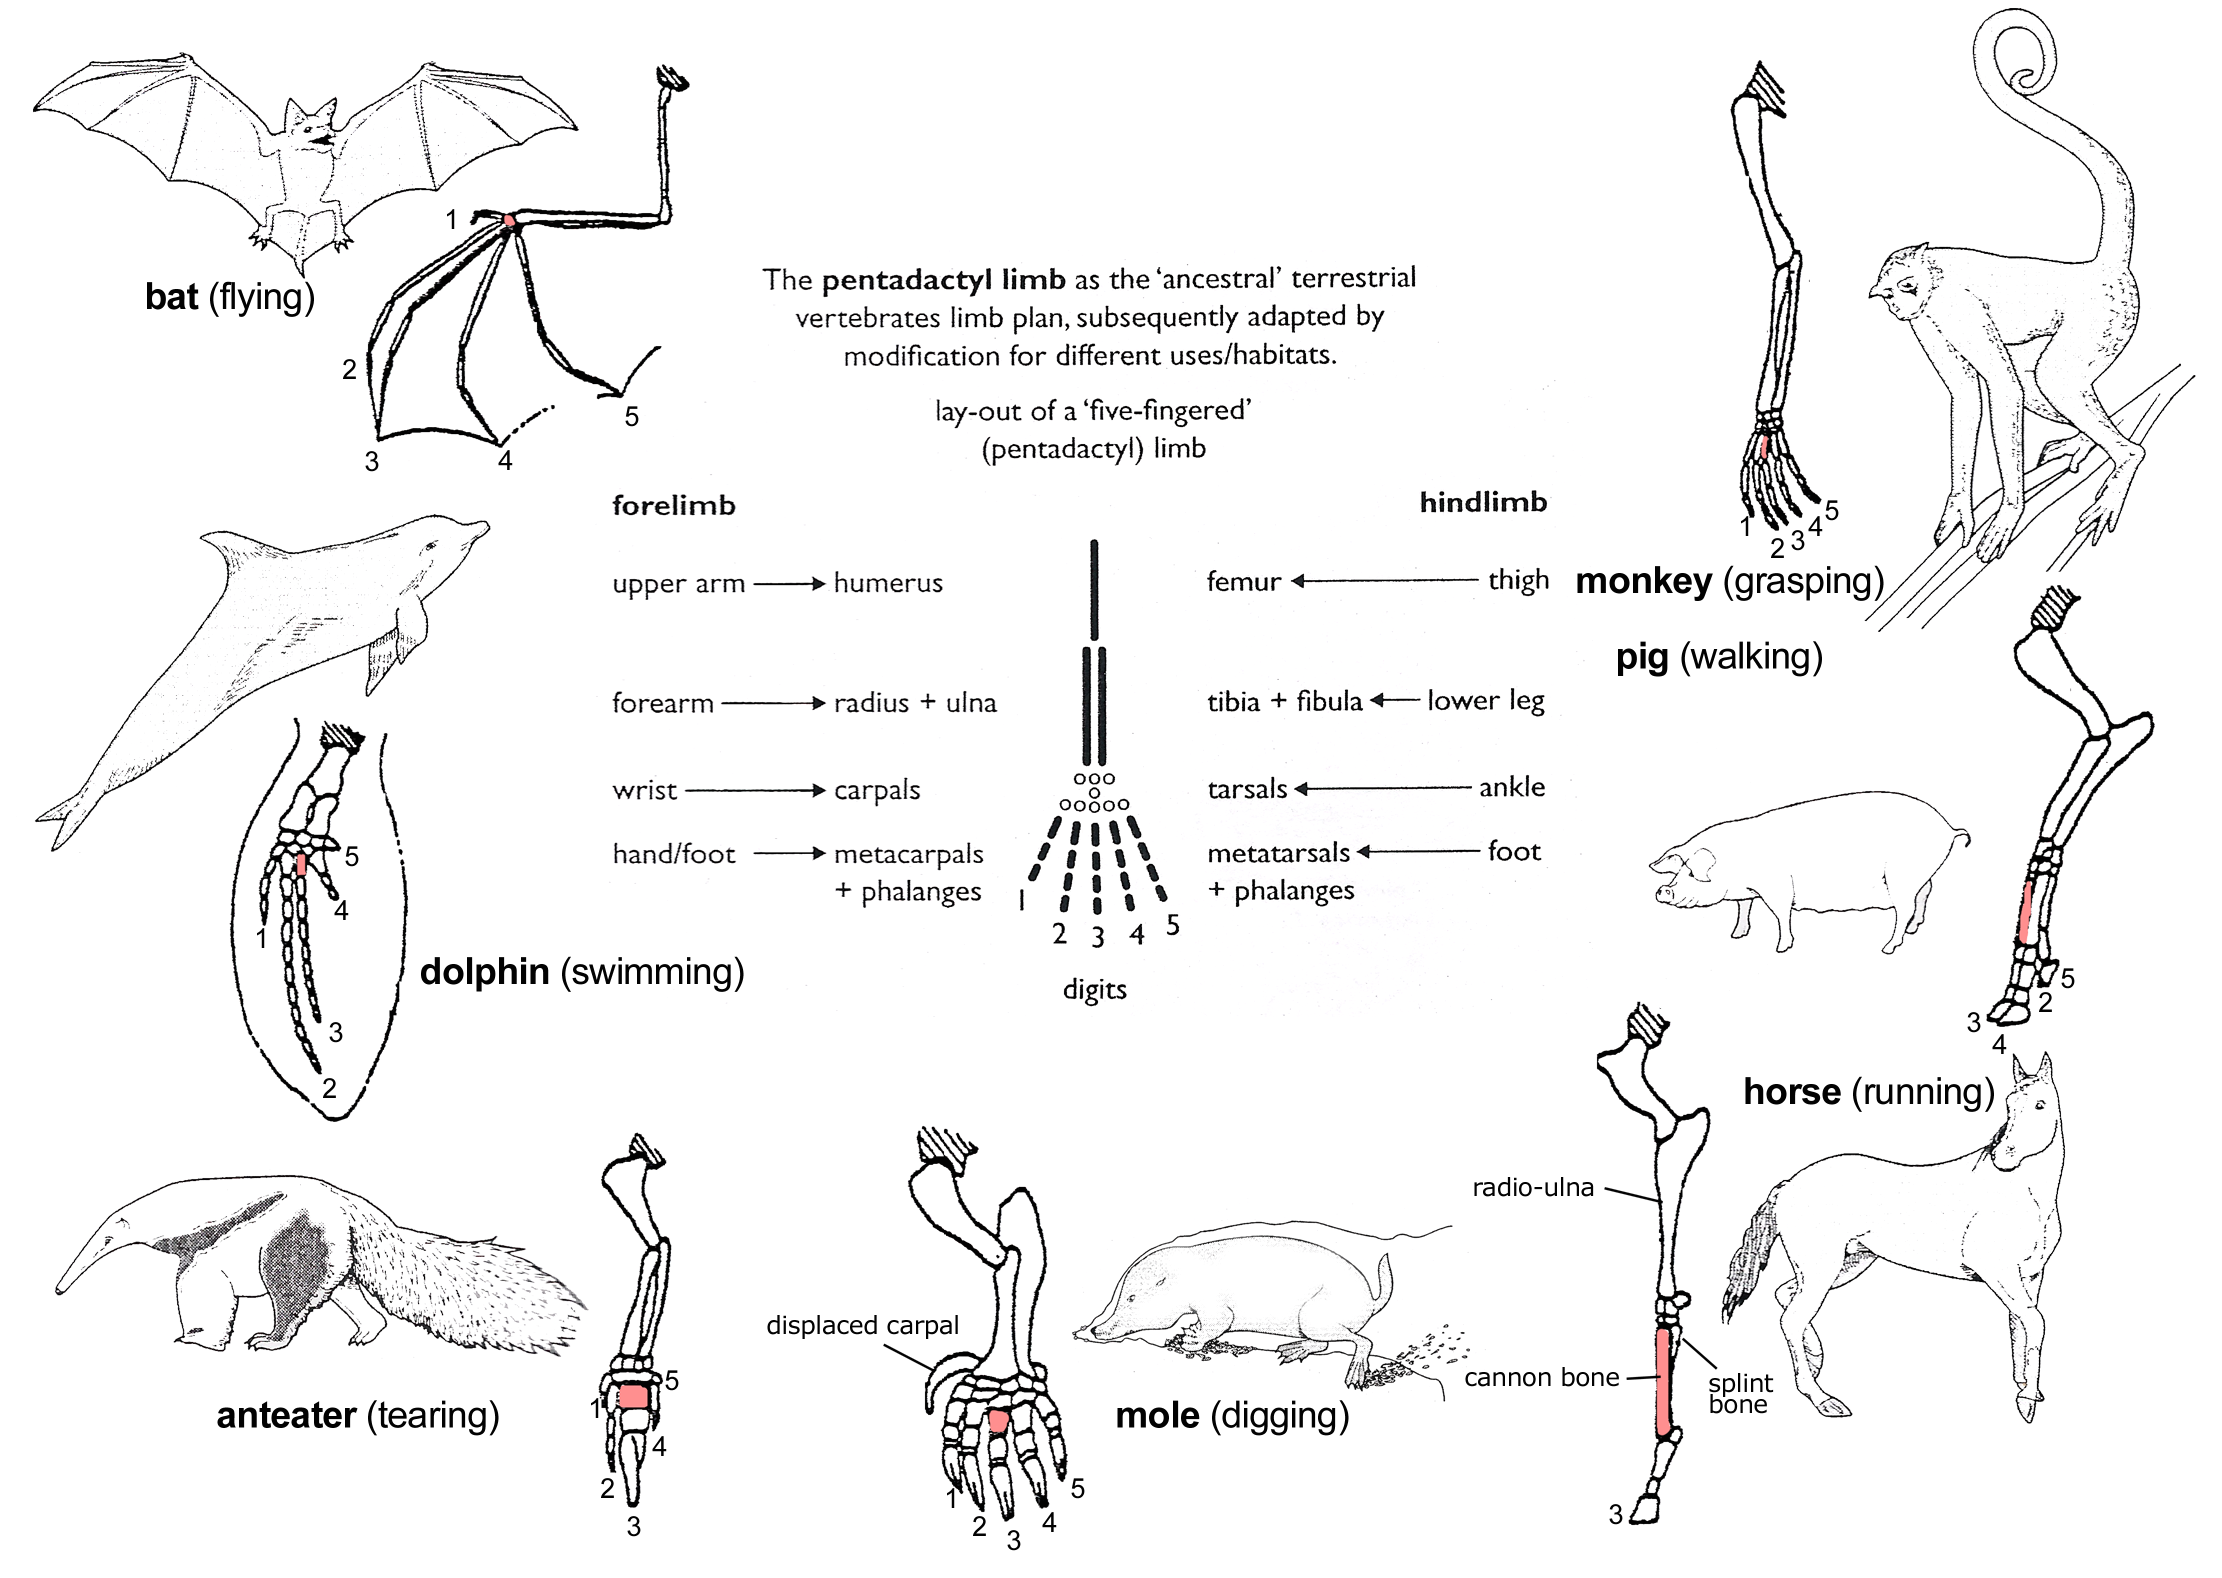 File:Evolution pl.png - Wikipedia, the free encyclopedia